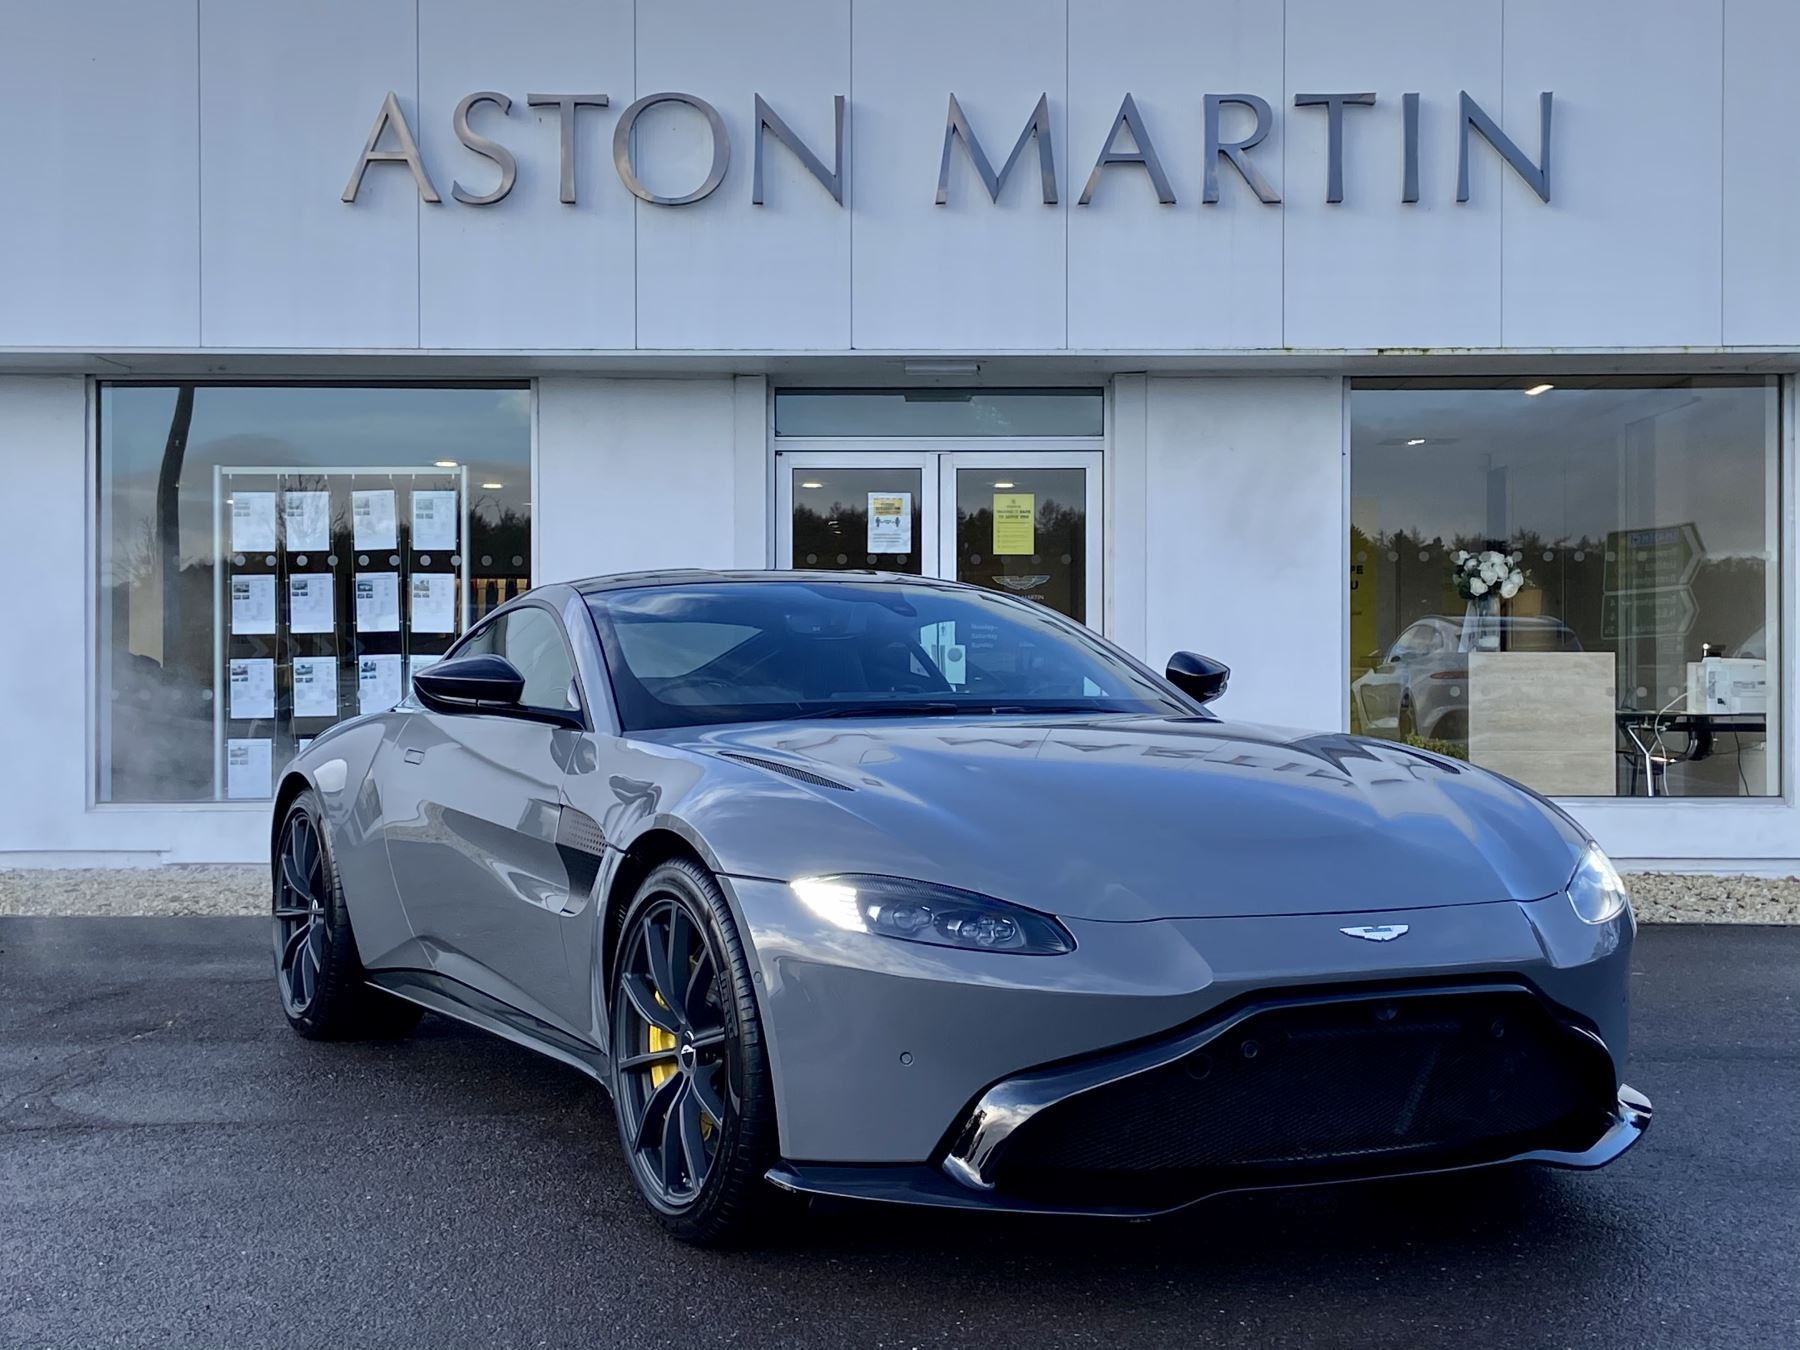 Aston Martin V8 Vantage Coupe 2dr ZF 8 Speed 4.0 Automatic 3 door Coupe (2019) image